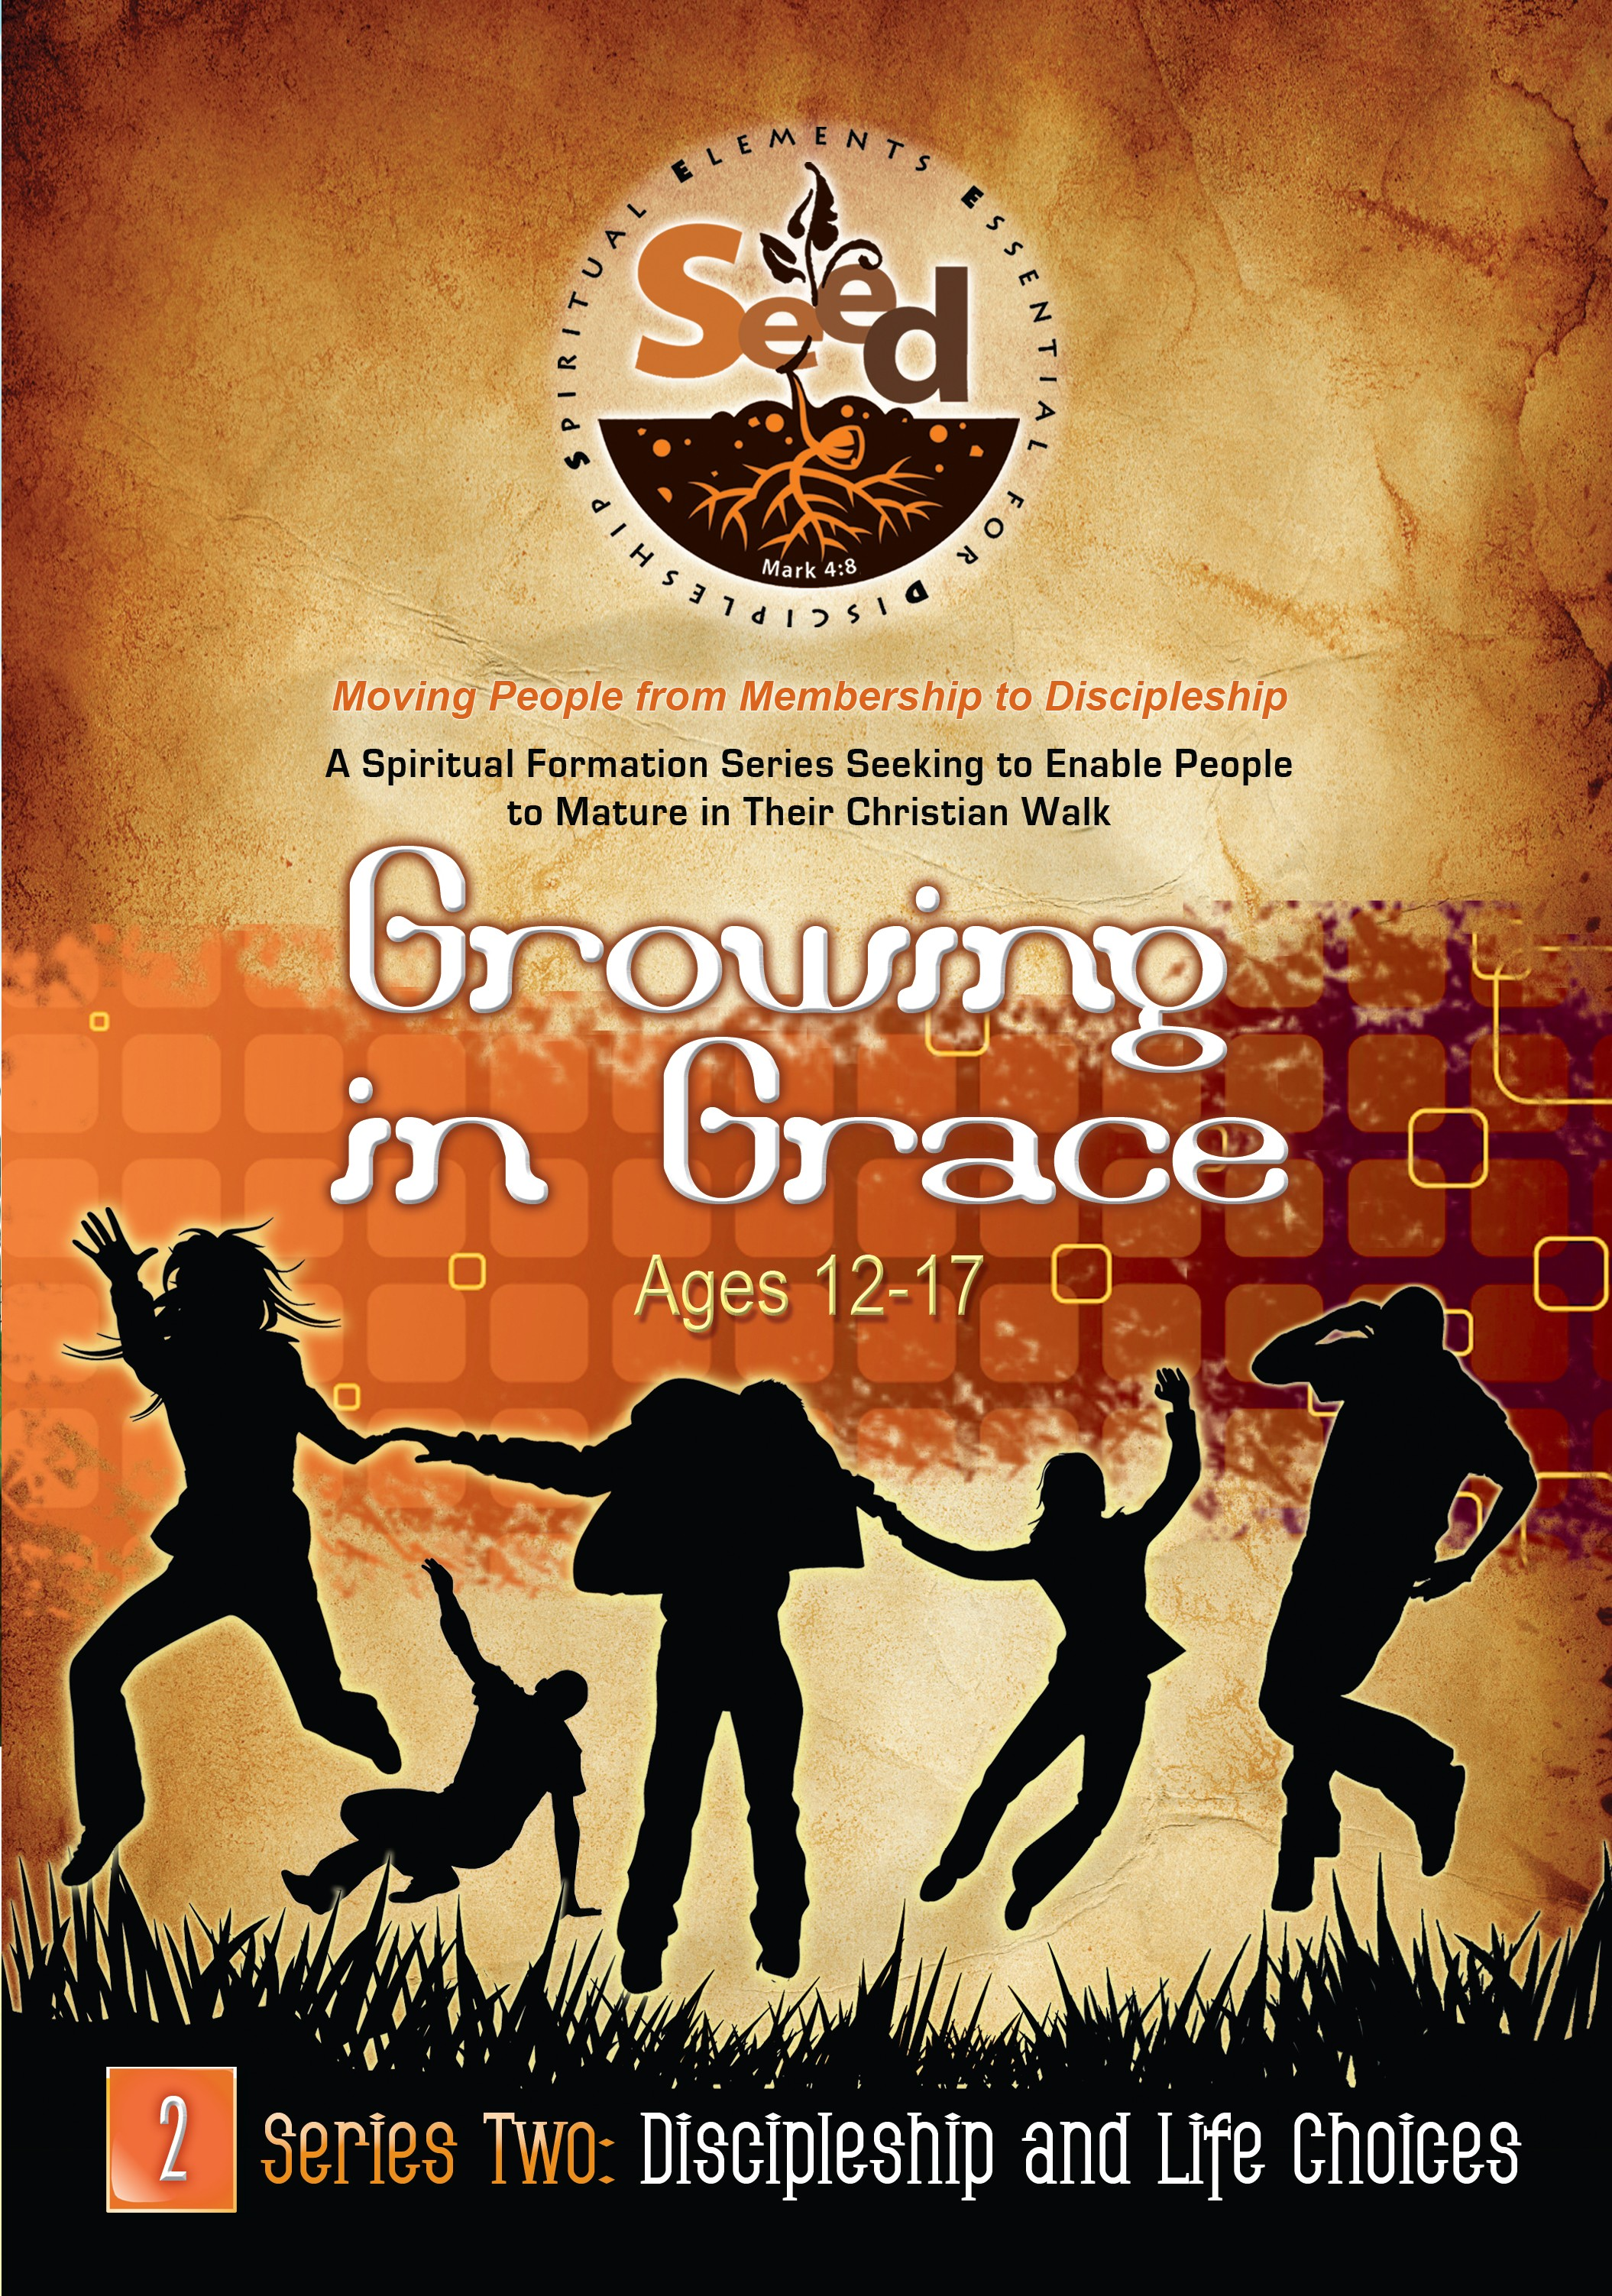 SEED Growing in Grace (Ages 12-17): Series 2: Discipleship and Life Choices